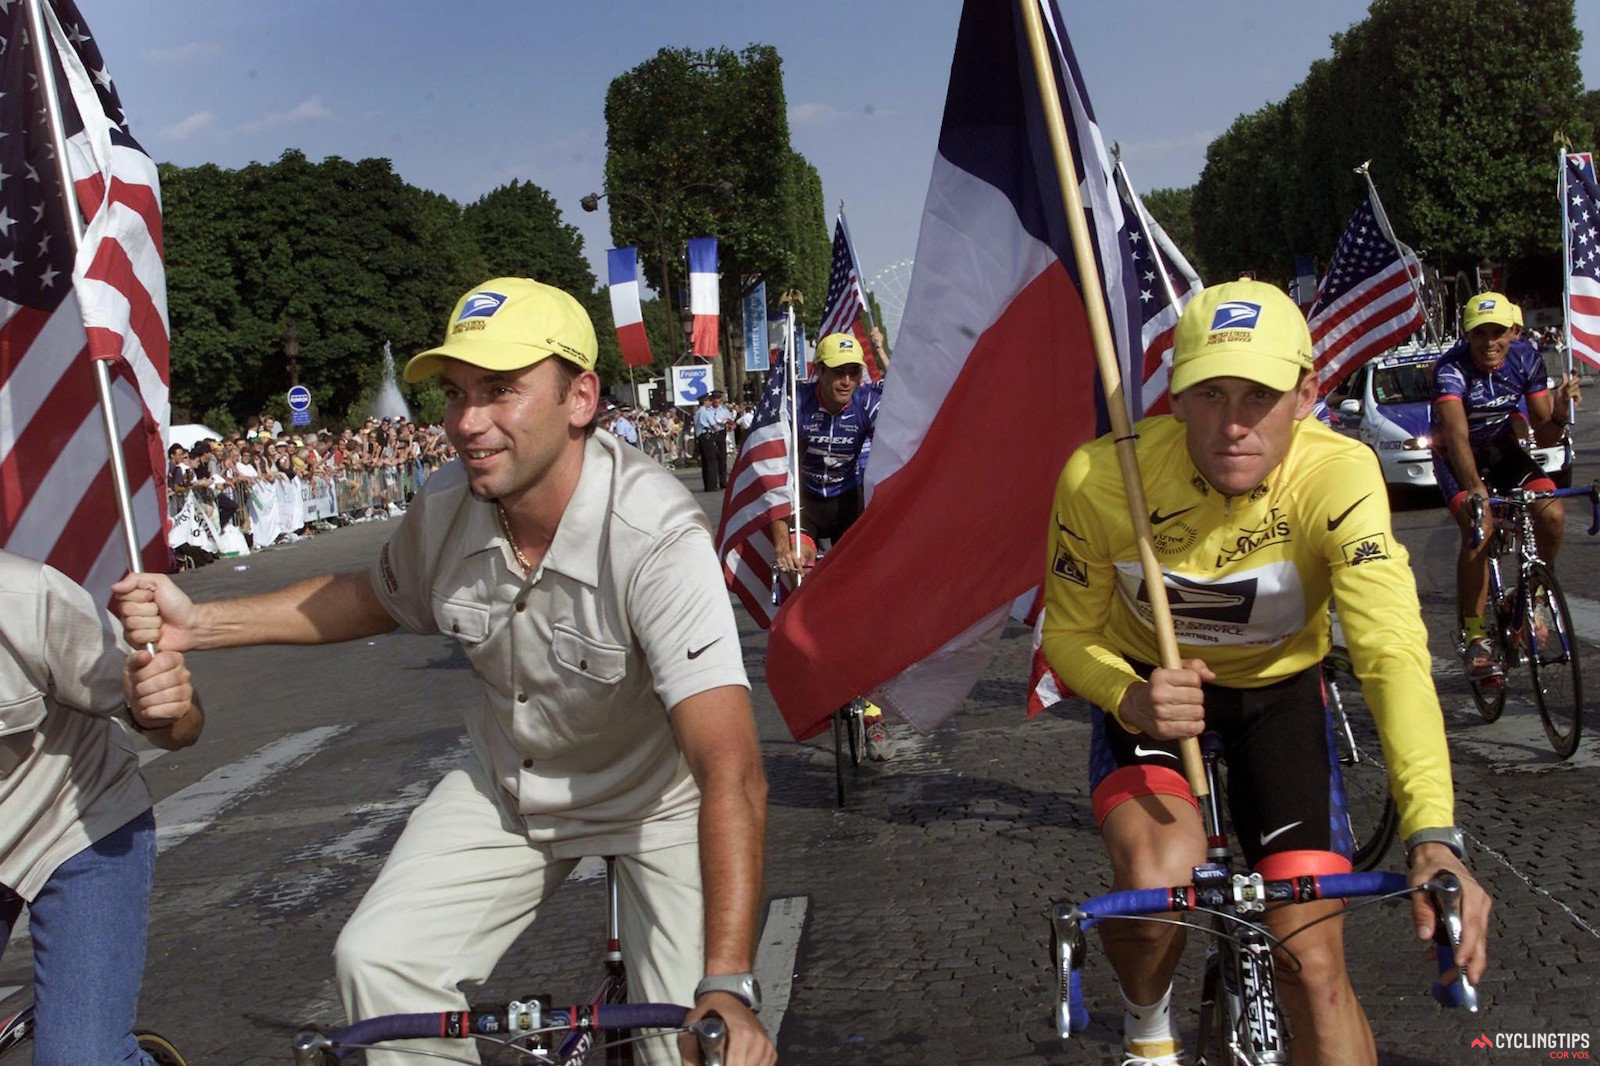 Johan Bruyneel (left) and Lance Armstrong on the Champs Elysees in Paris, at the conclusion of the 2001 Tour de France, Armstrong's third consecutive Tour victory. Photo: Cor Vos.